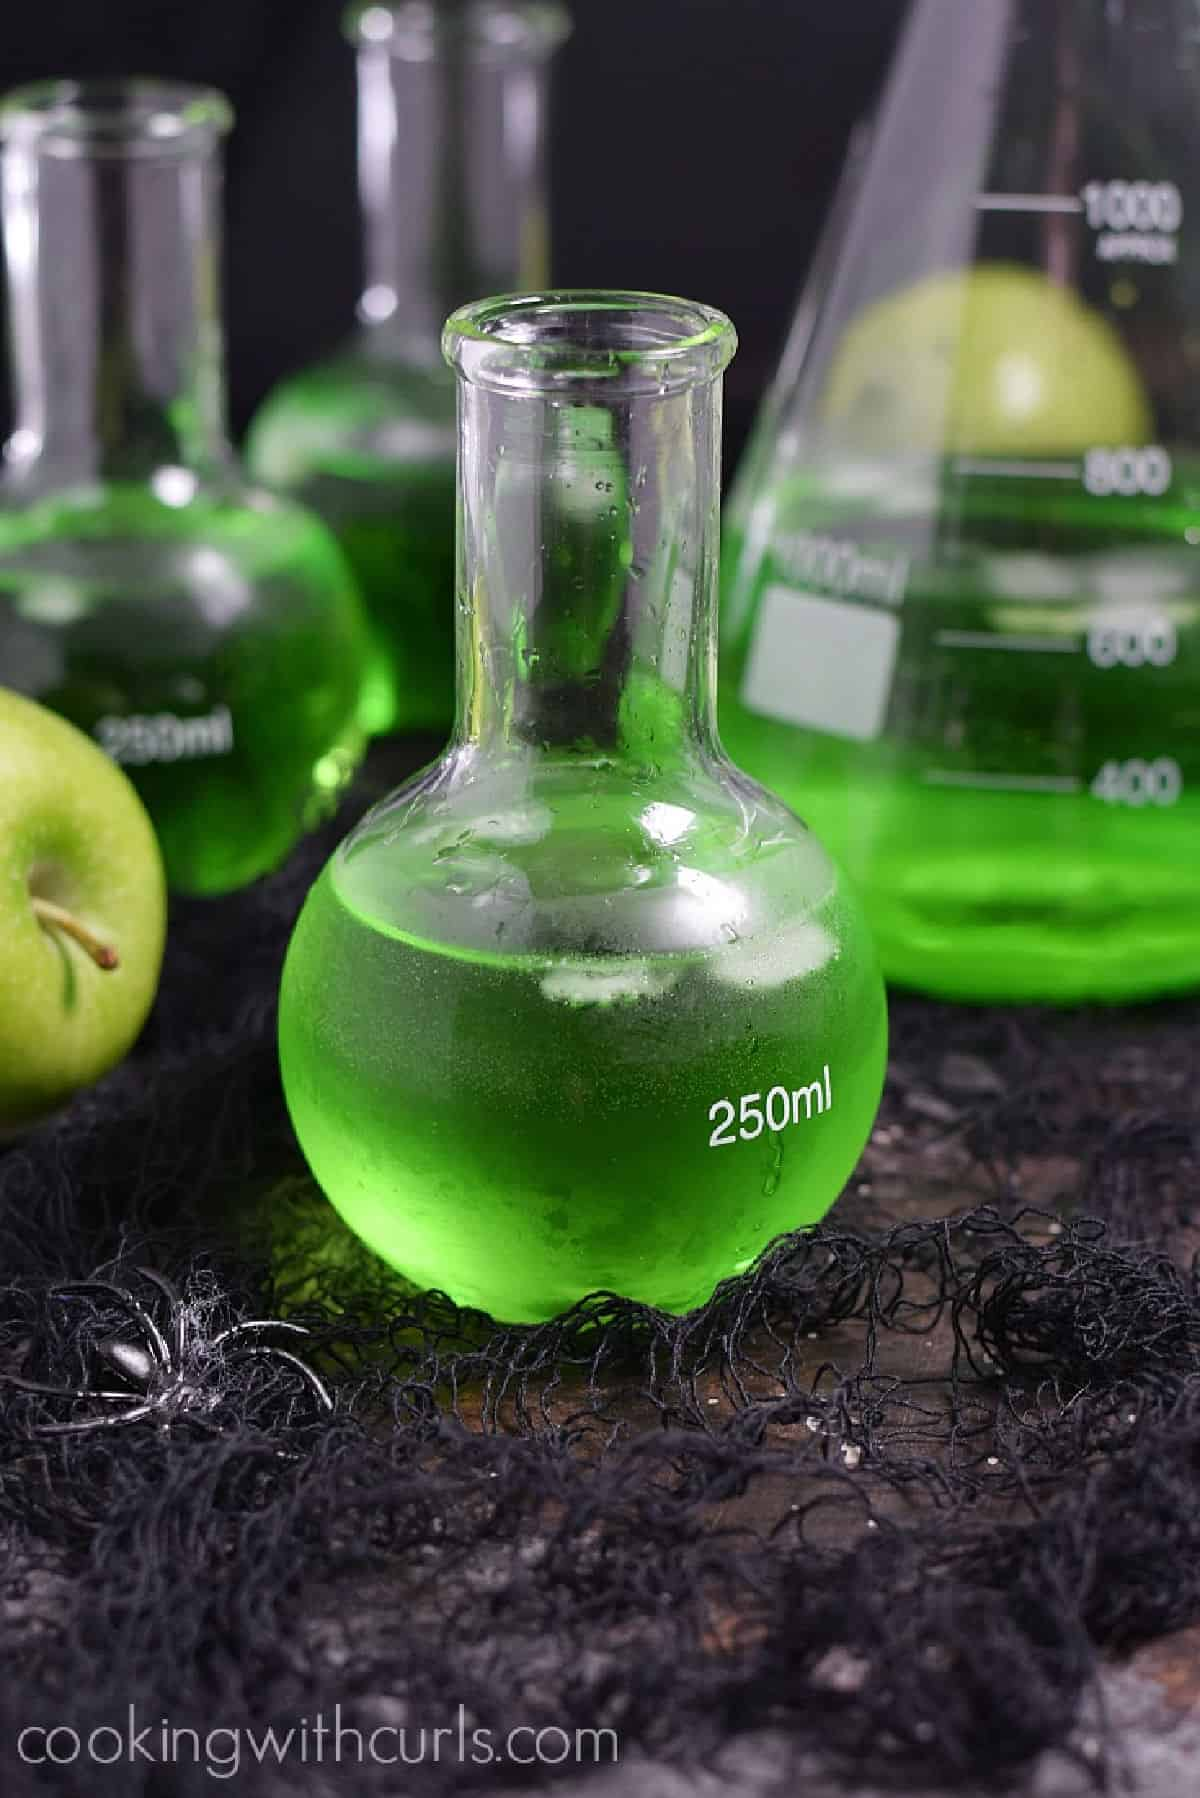 Three Poisoned Apple Cocktails in glass science bottles and a large beaker.